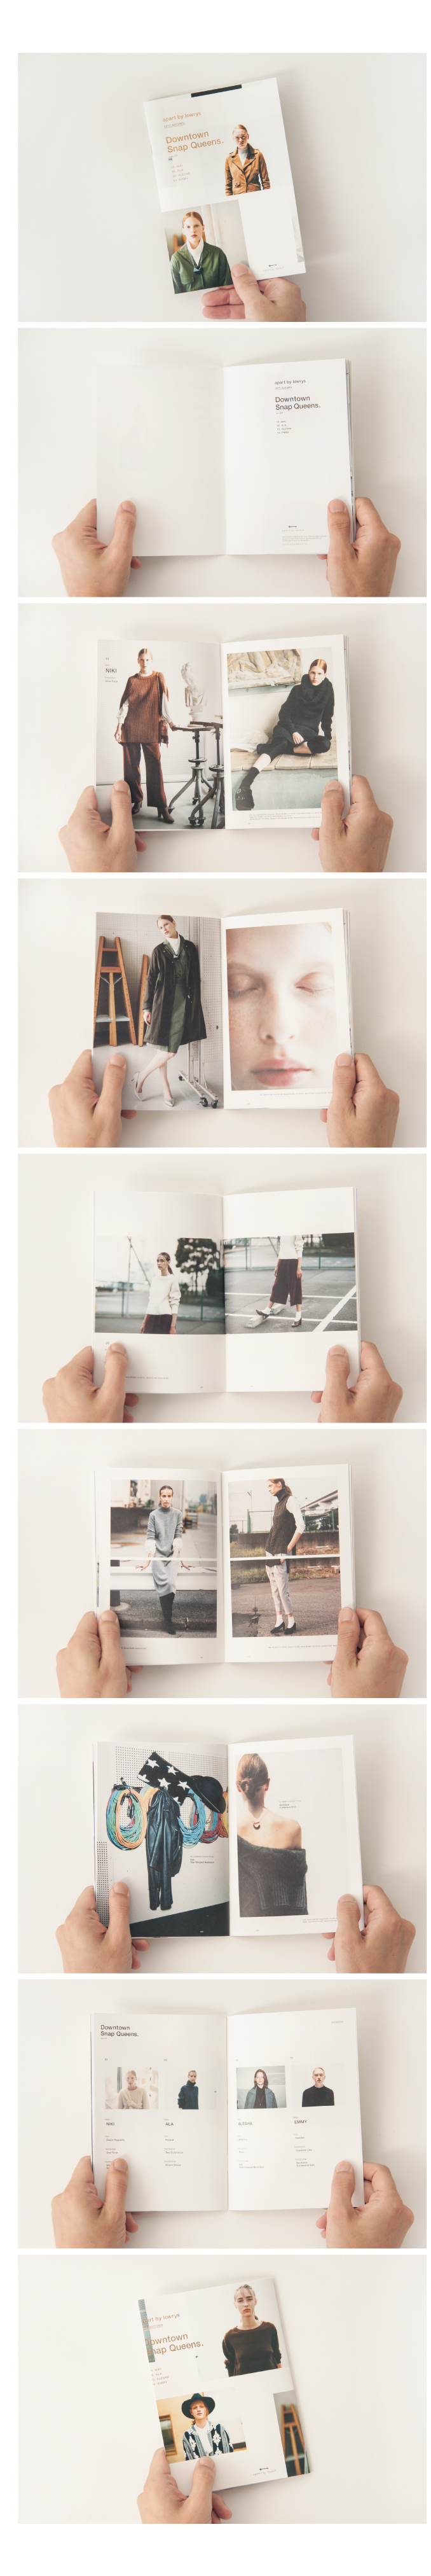 apart by lowrys/Downtown Snap Queens. vol.01